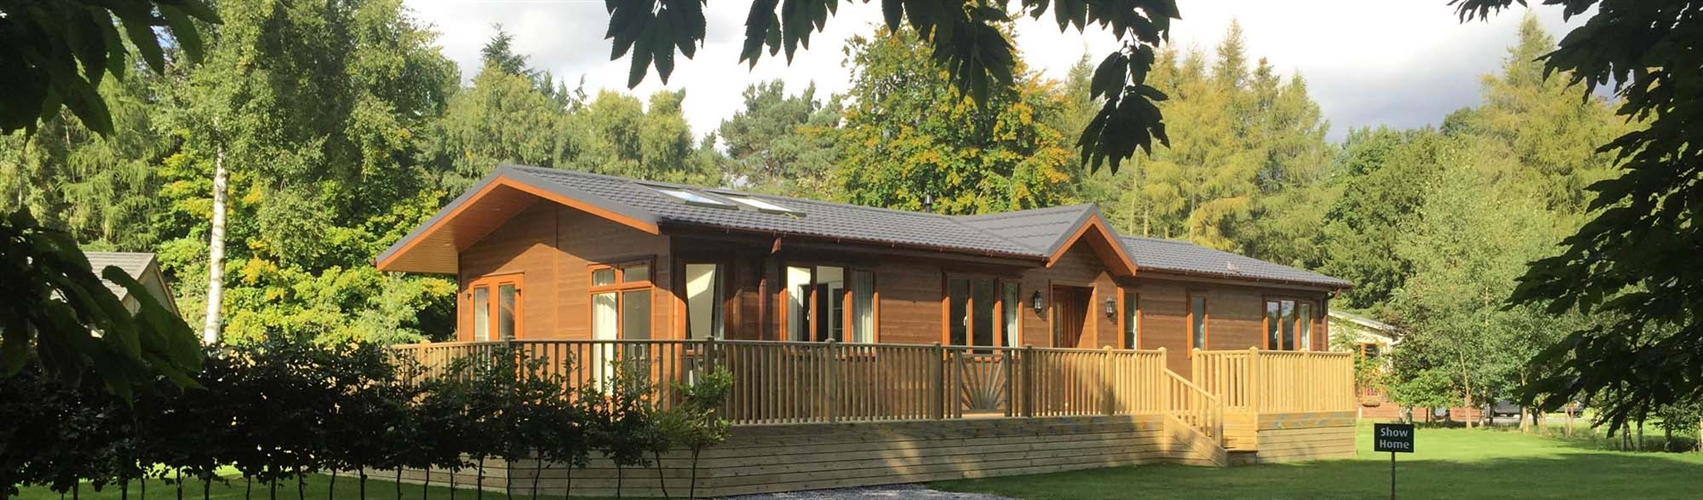 lodges in york selby north yorkshire holiday homes